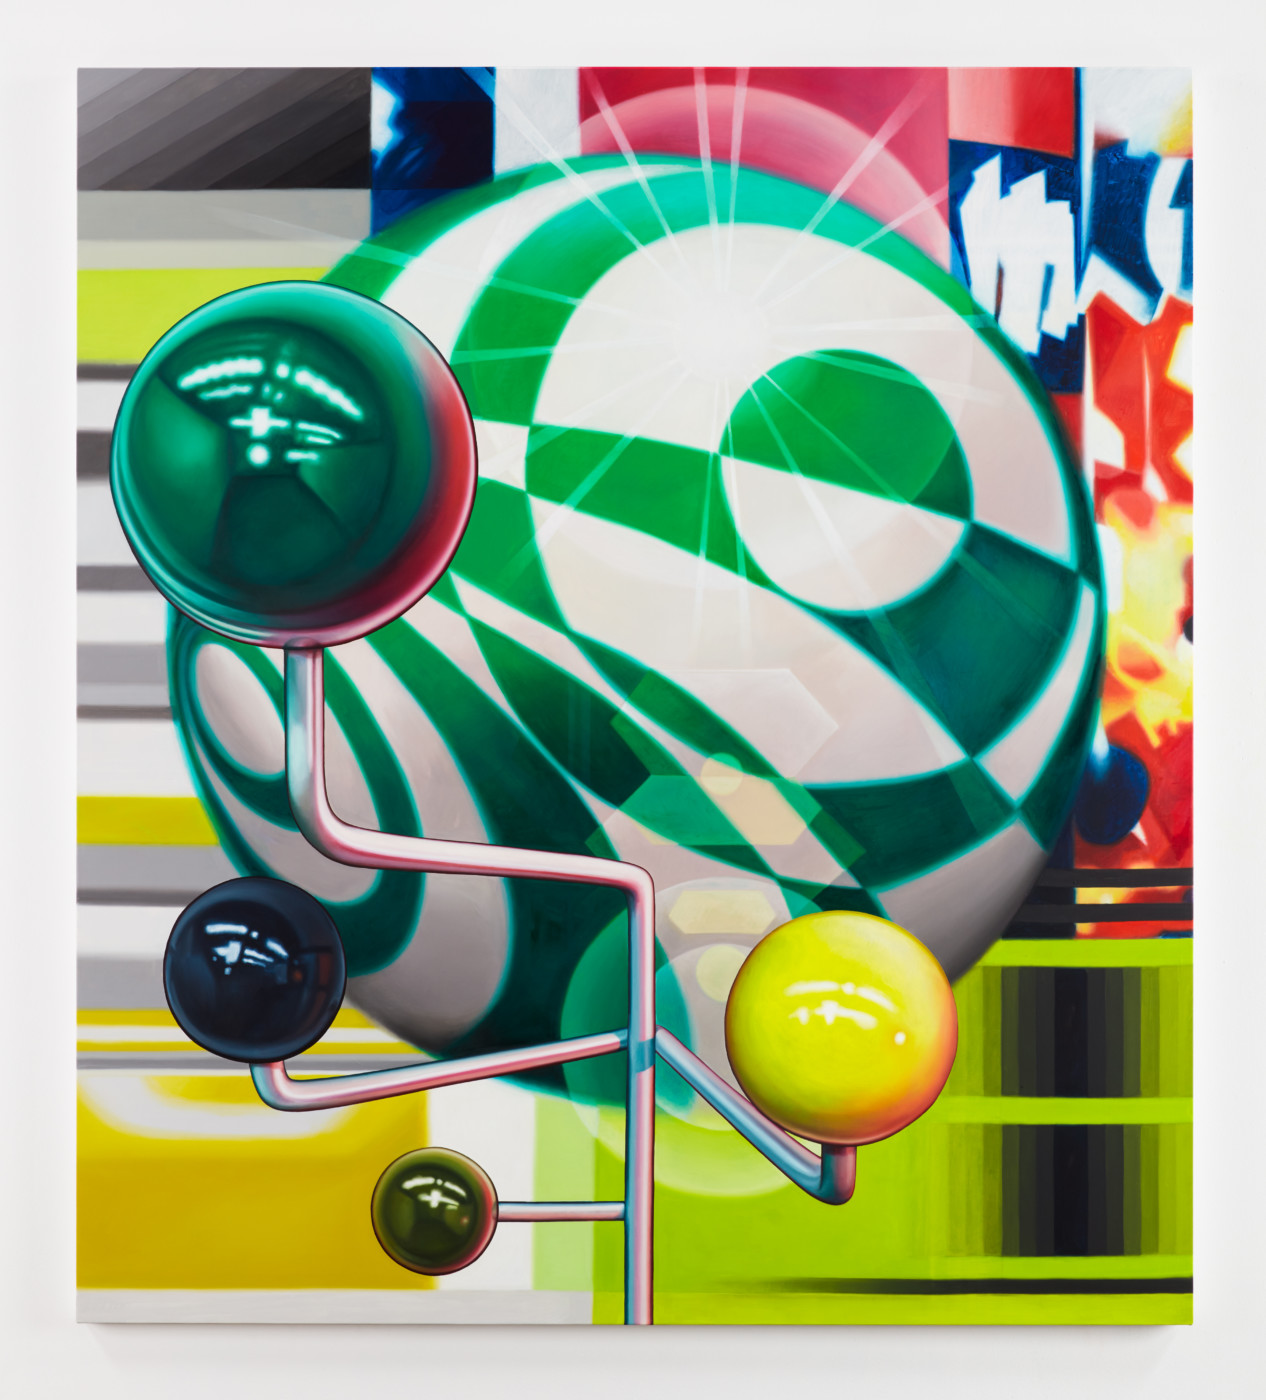 TÊTE  Assembly</I>, 2019 Oil on canvas 182.9 x 162.6 cm / 72 x 64 in  ORION MARTIN